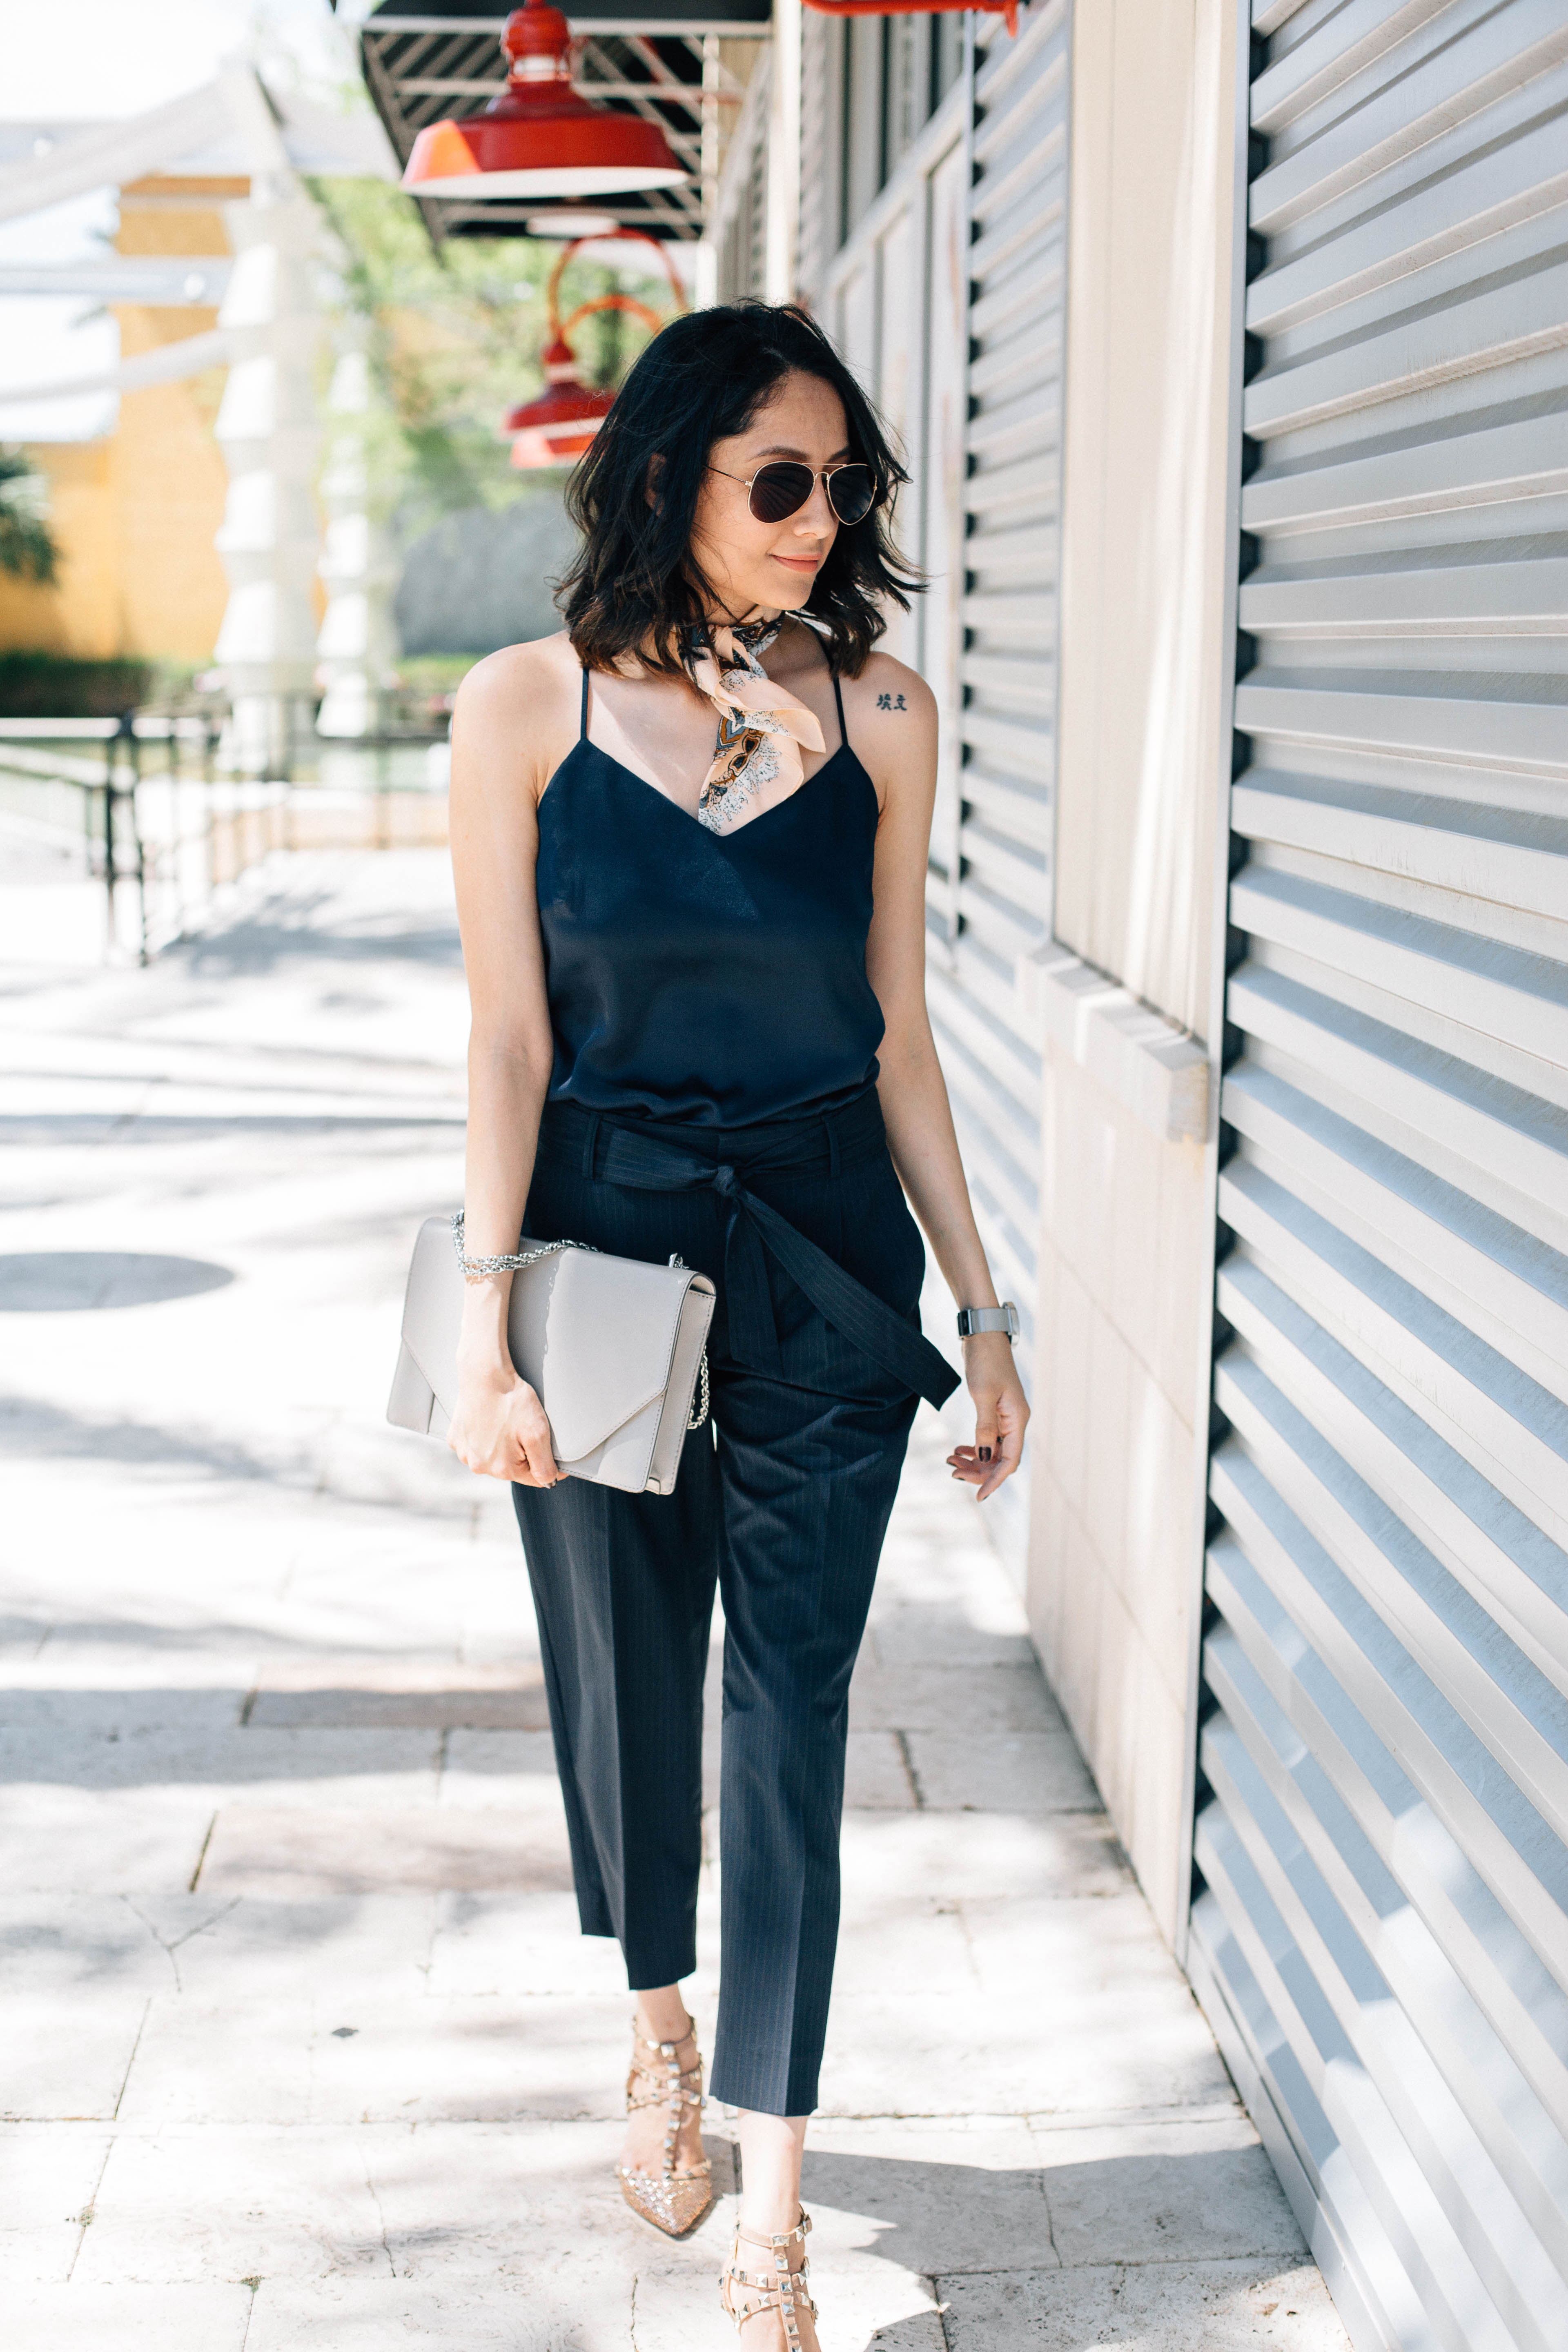 Daily Craving wearing chic pinstripe pants with a navy silk camisole